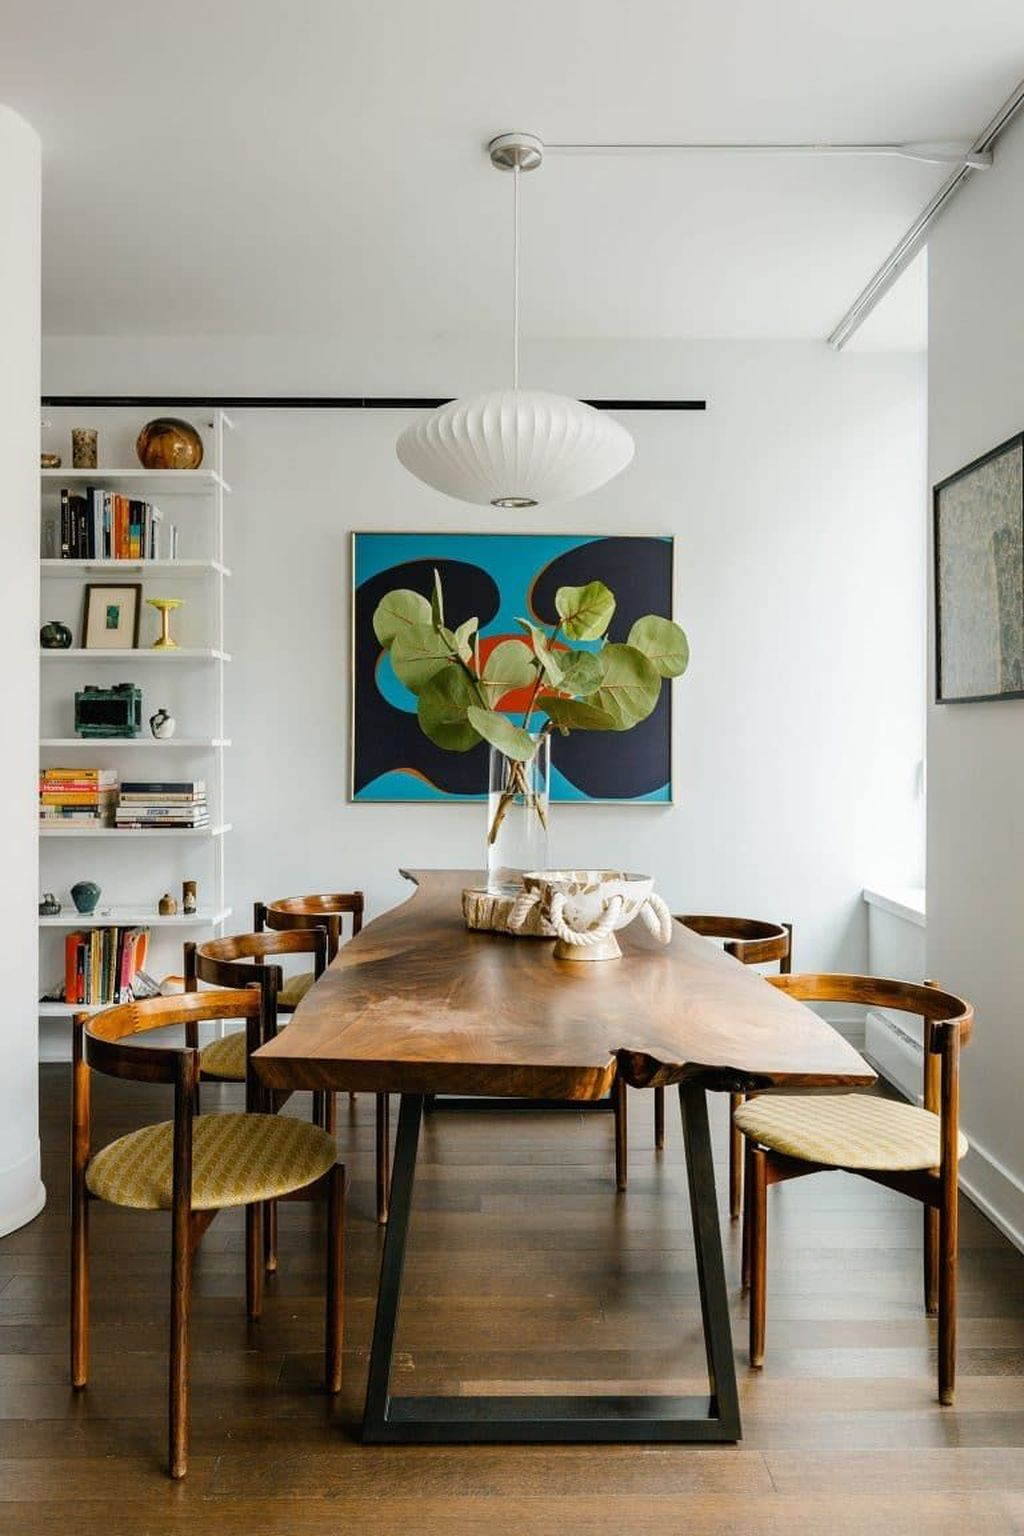 Admirable Dining Room Design Ideas You Will Love 21